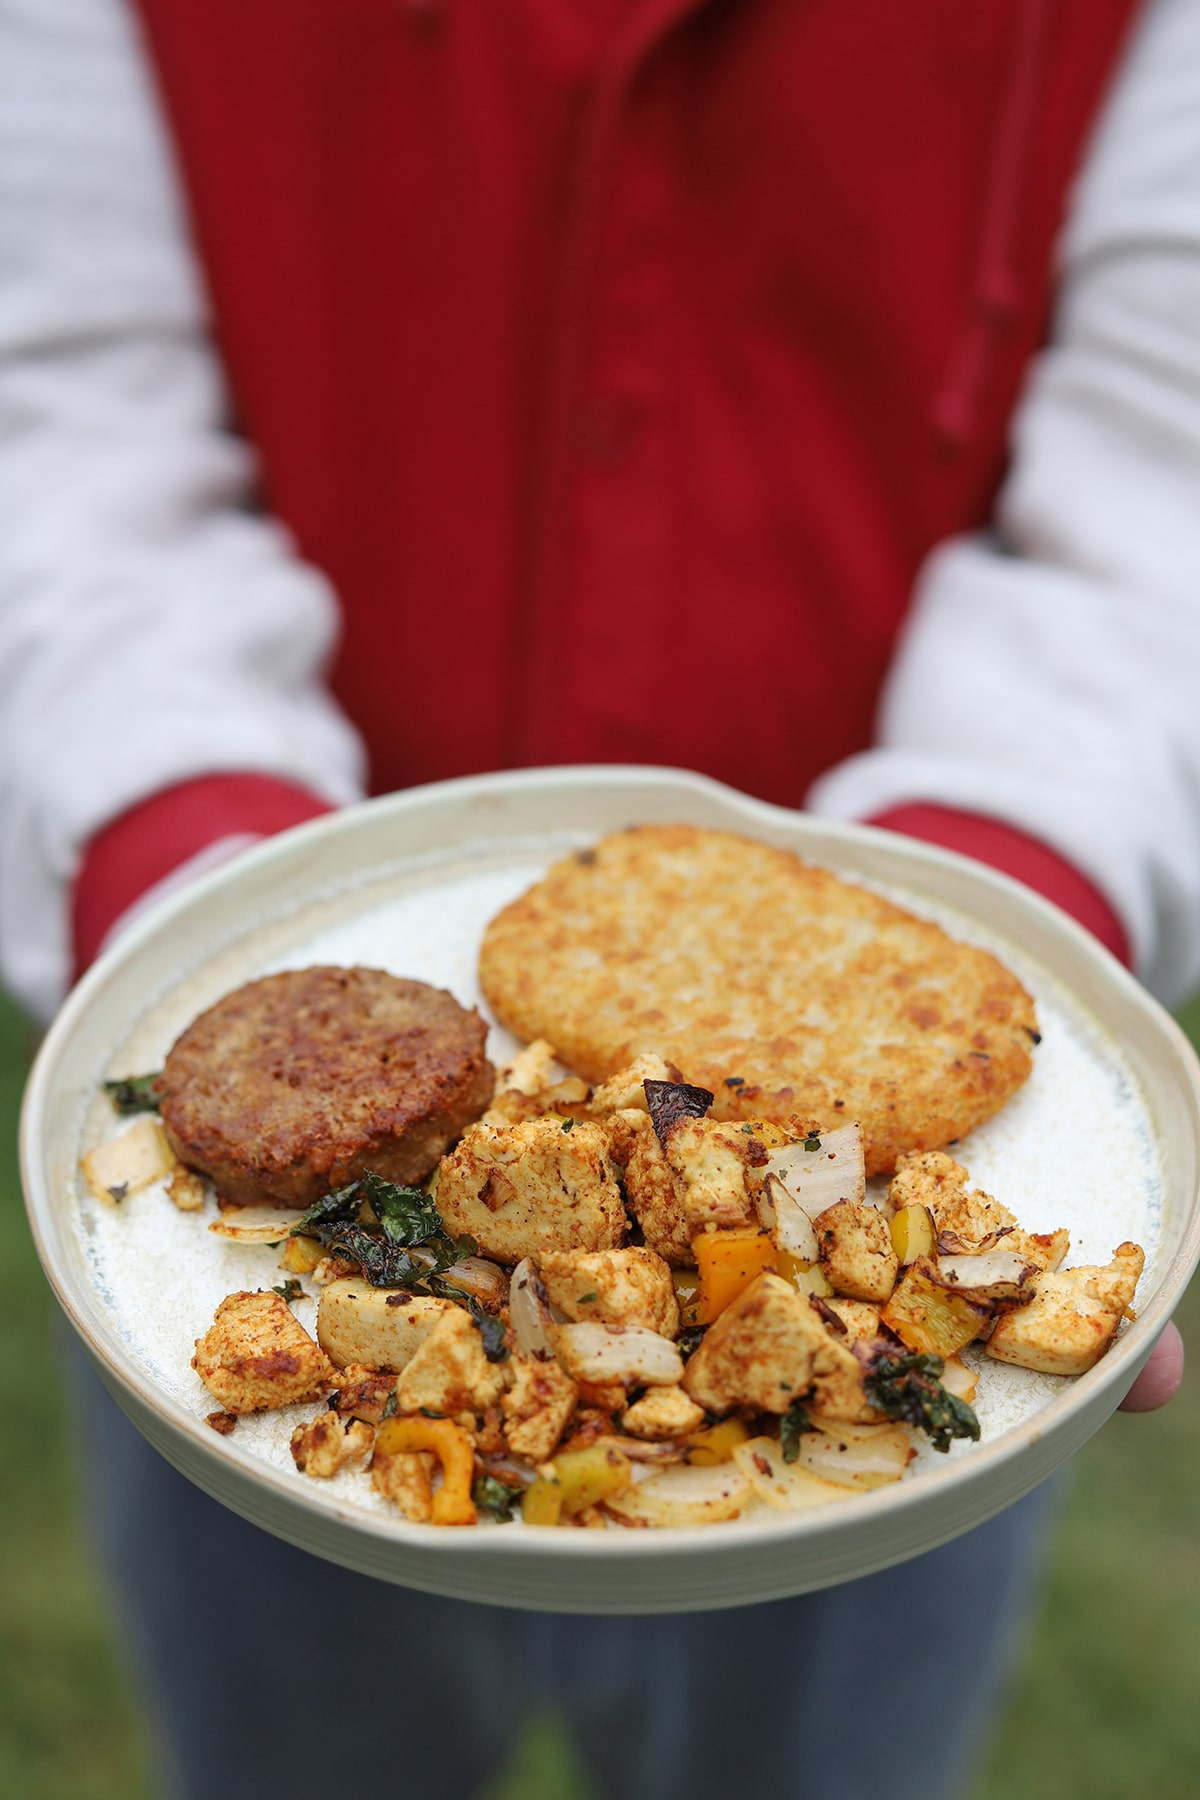 Hands holding plate with tofu scramble, hashbrown patty, and breakfast sausage.